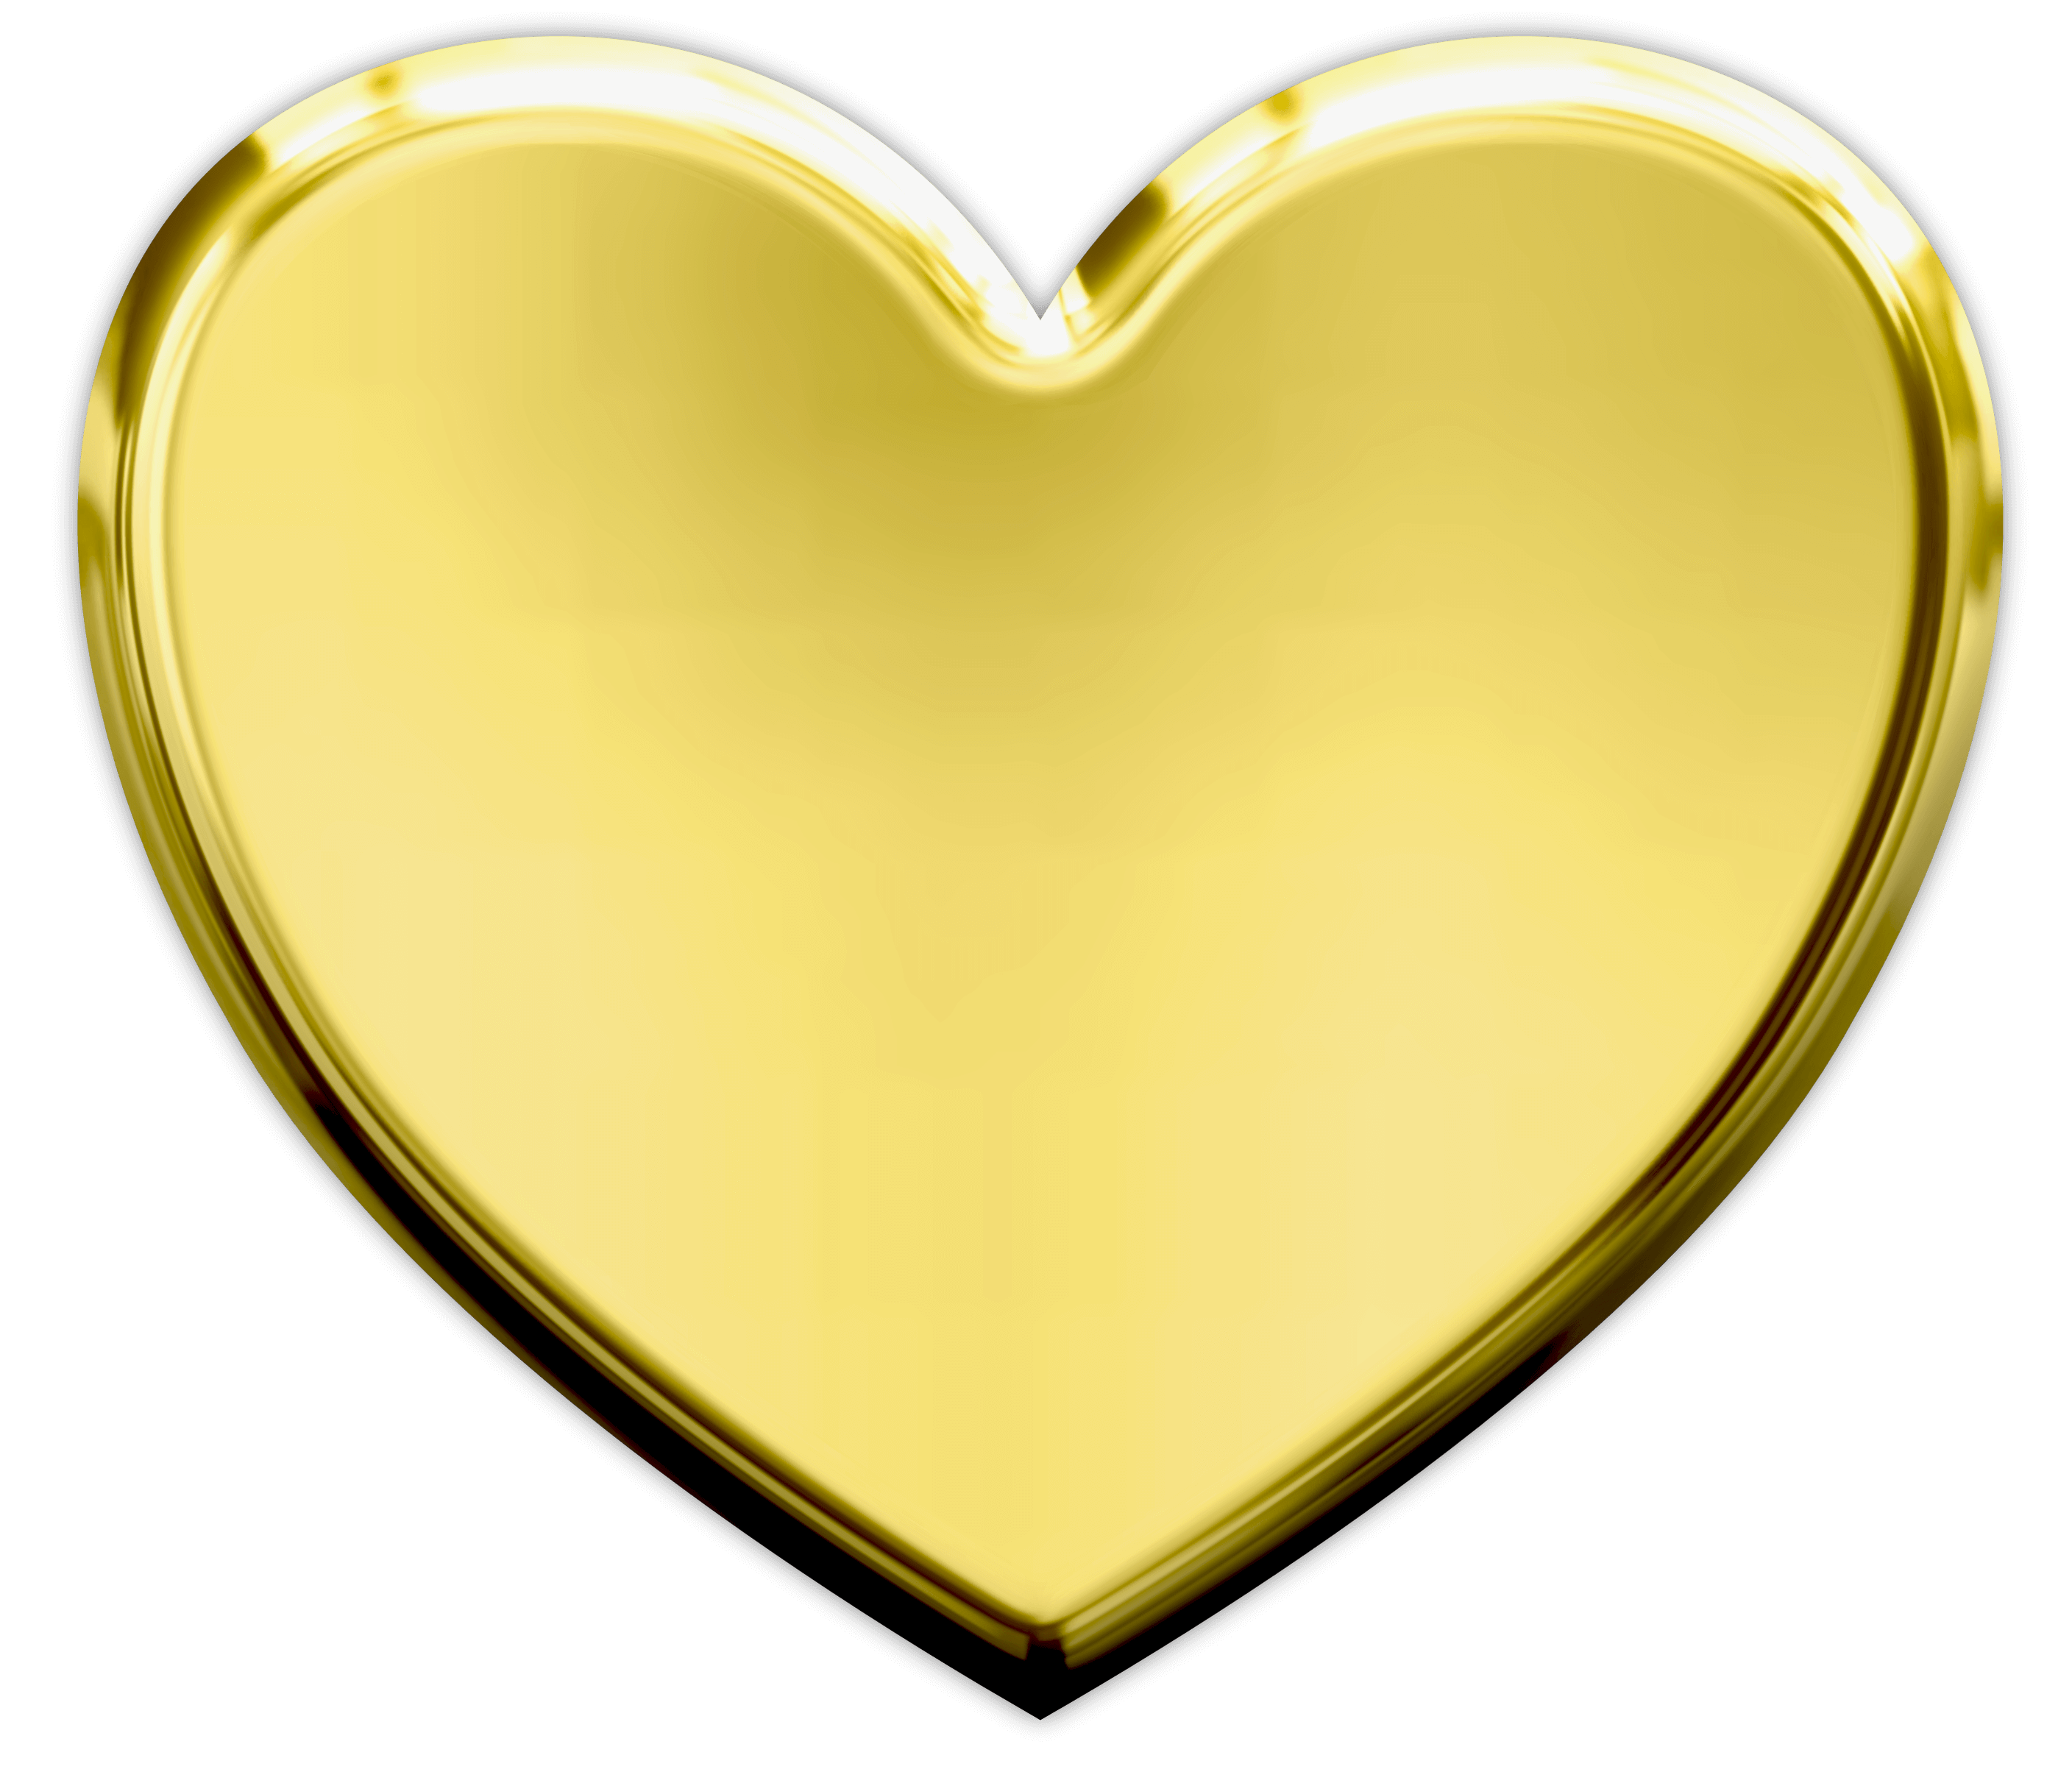 gold heart png transparent image #24136